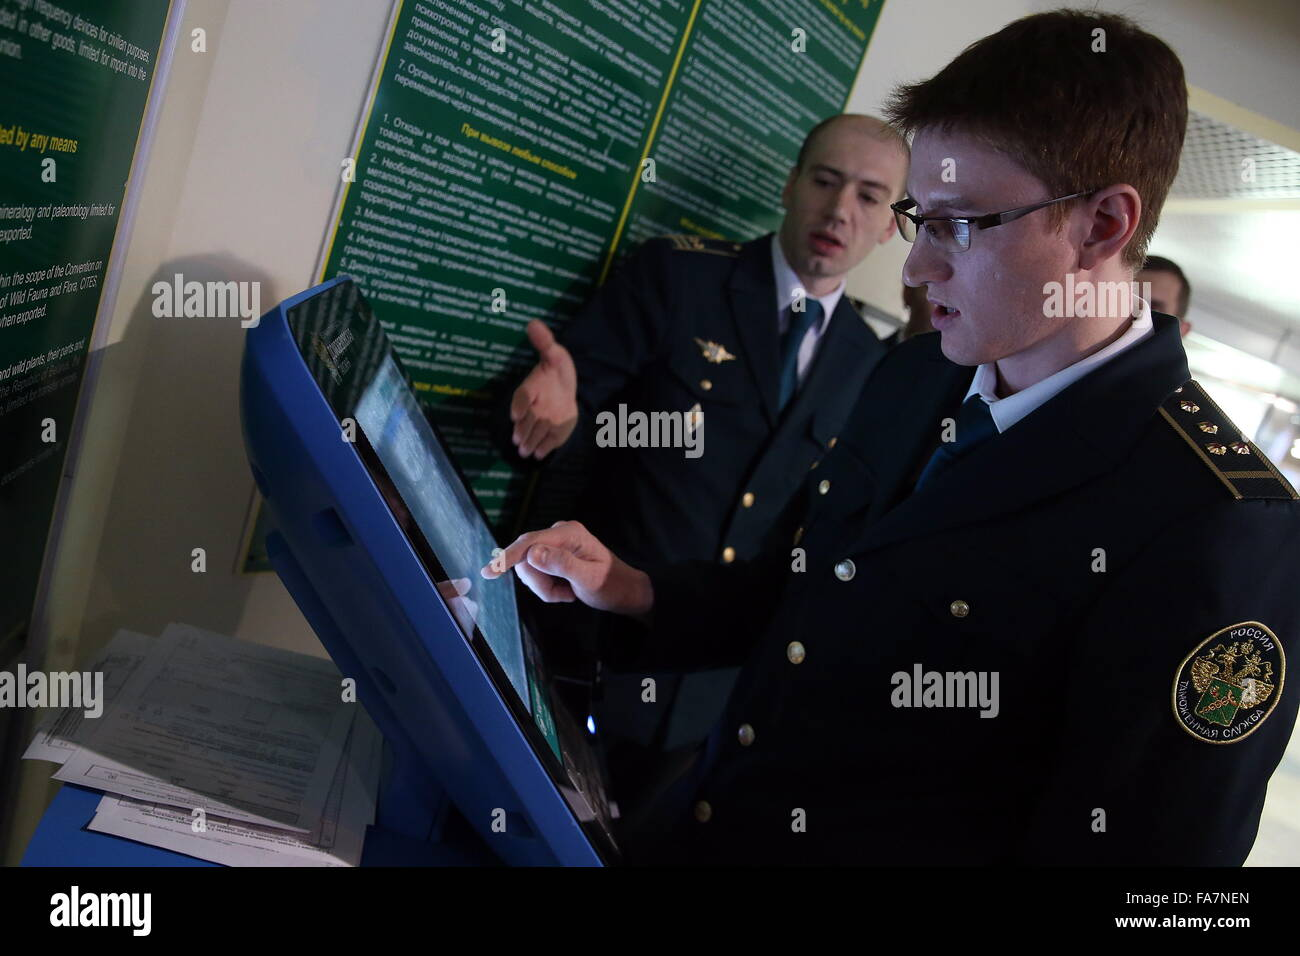 customs officers airport stock photos customs officers airport moscow region russia 23rd dec 2015 russian customs officers seen during the